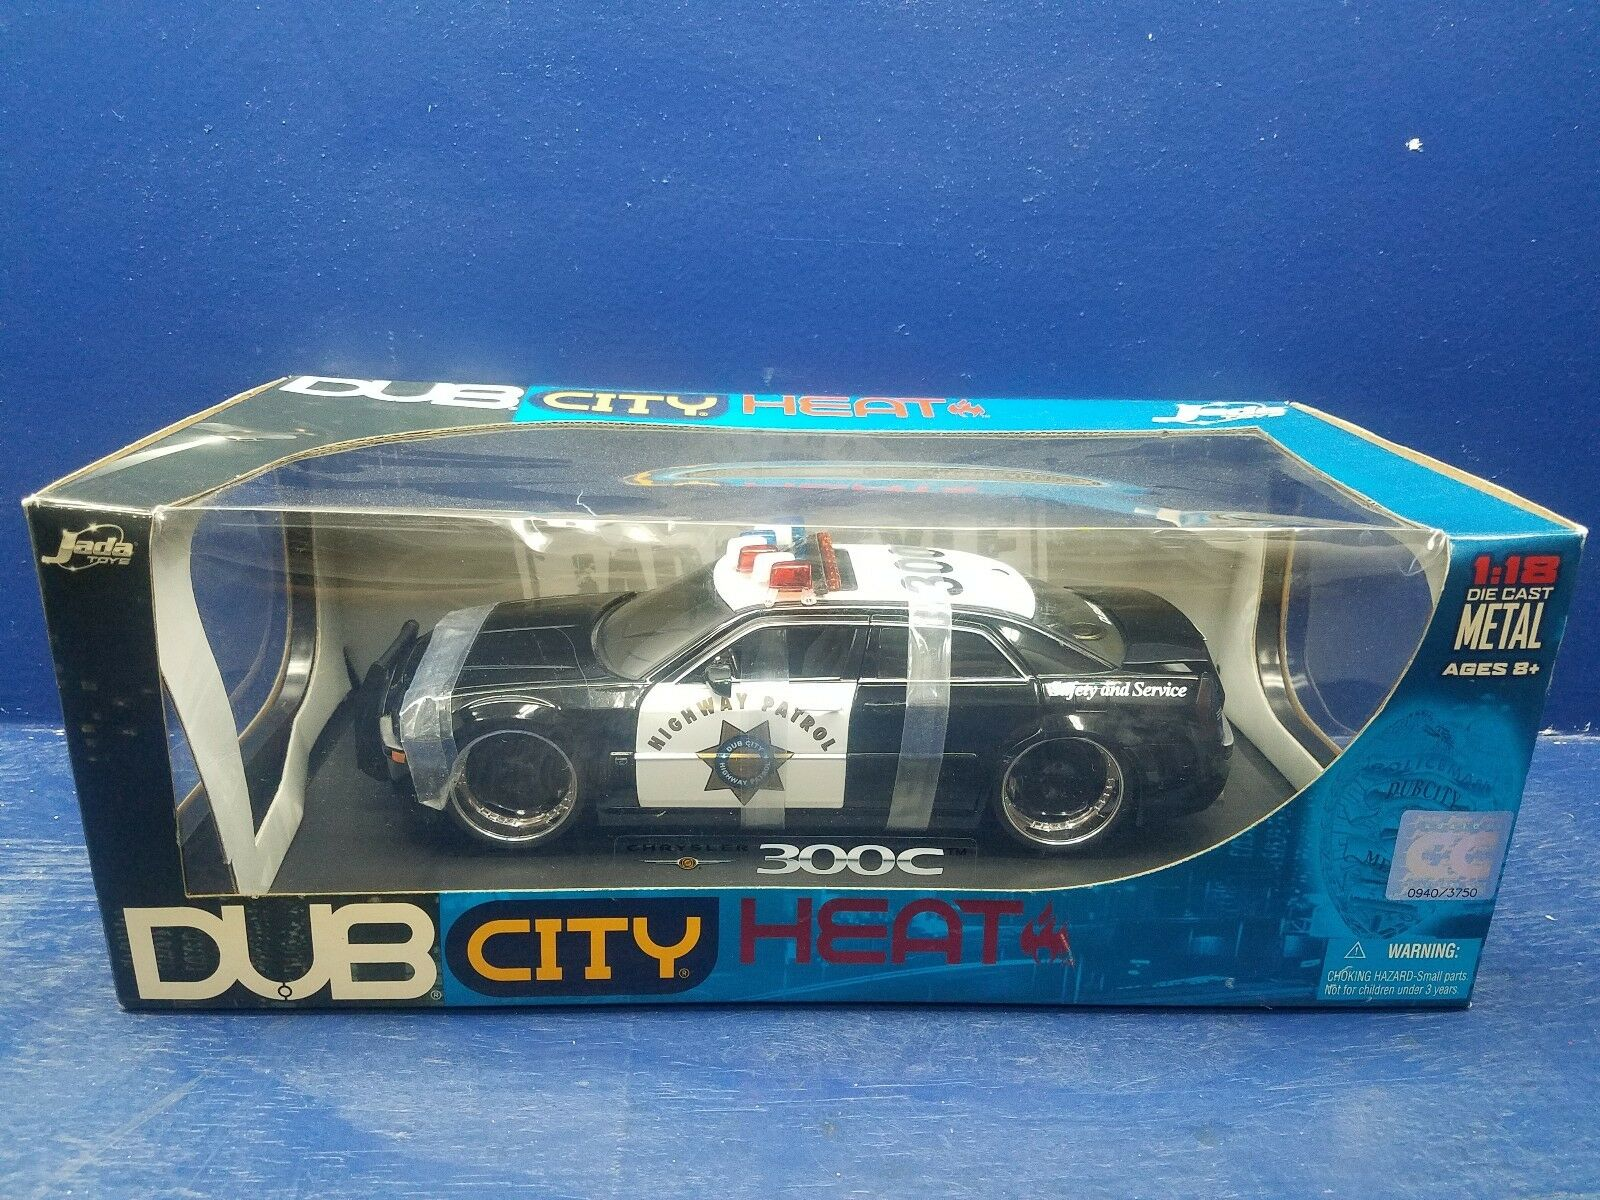 Dub City calor 2006 Chrysler 300C 1 18 Diecast Metal Jada Toys 2005